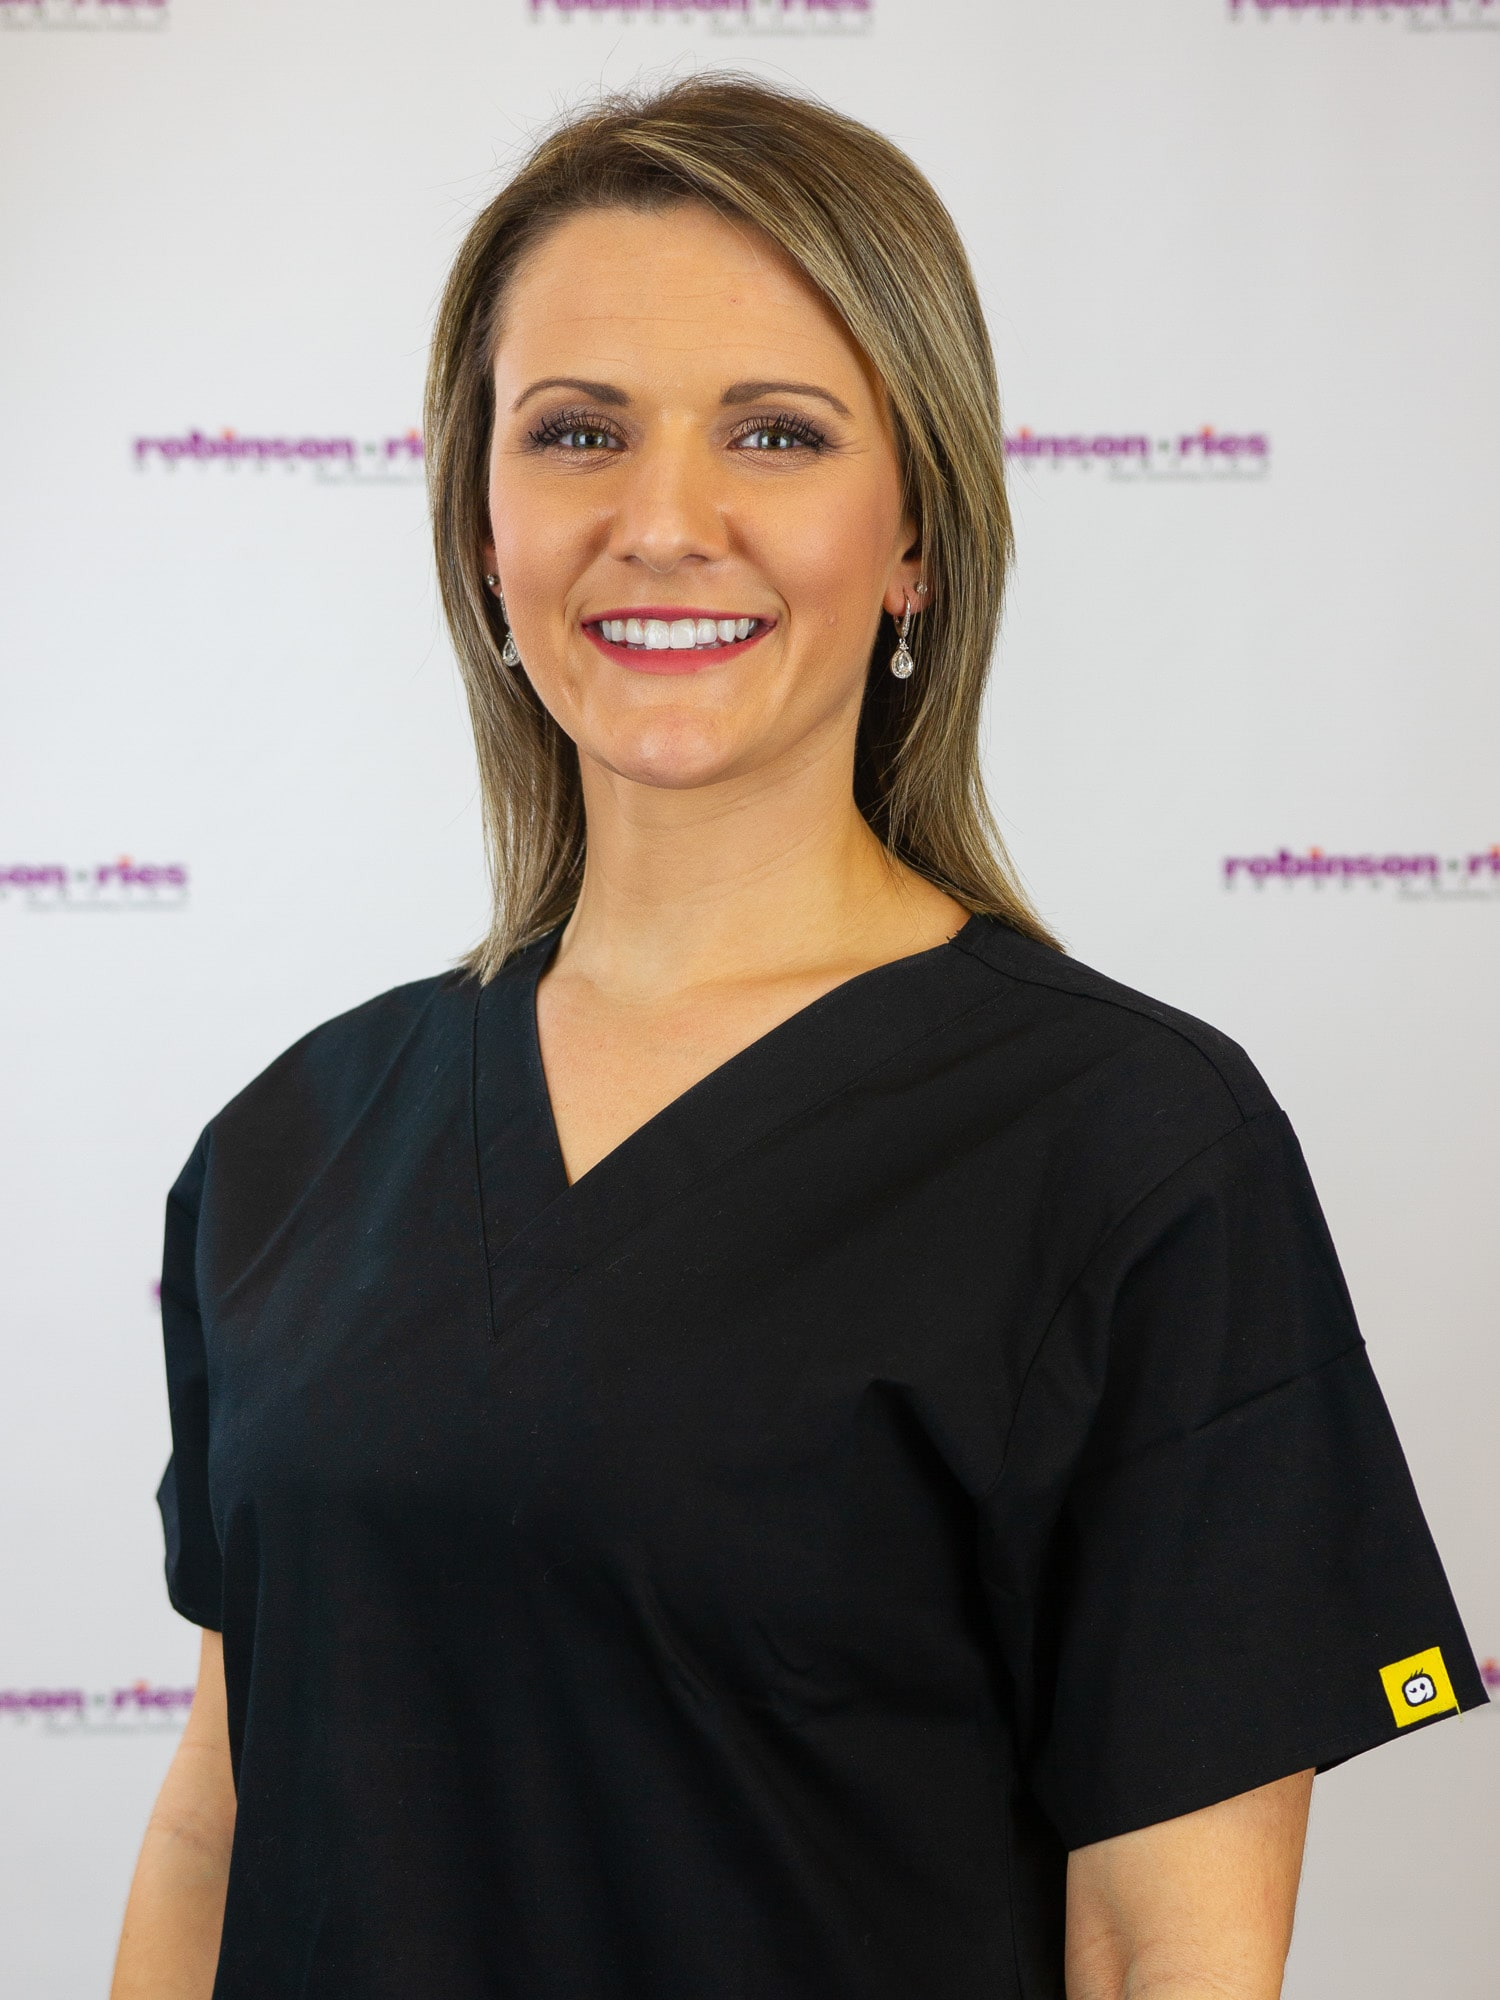 Ashley is an Orthodontic Assistant at Robinson + Ries Orthodontics.